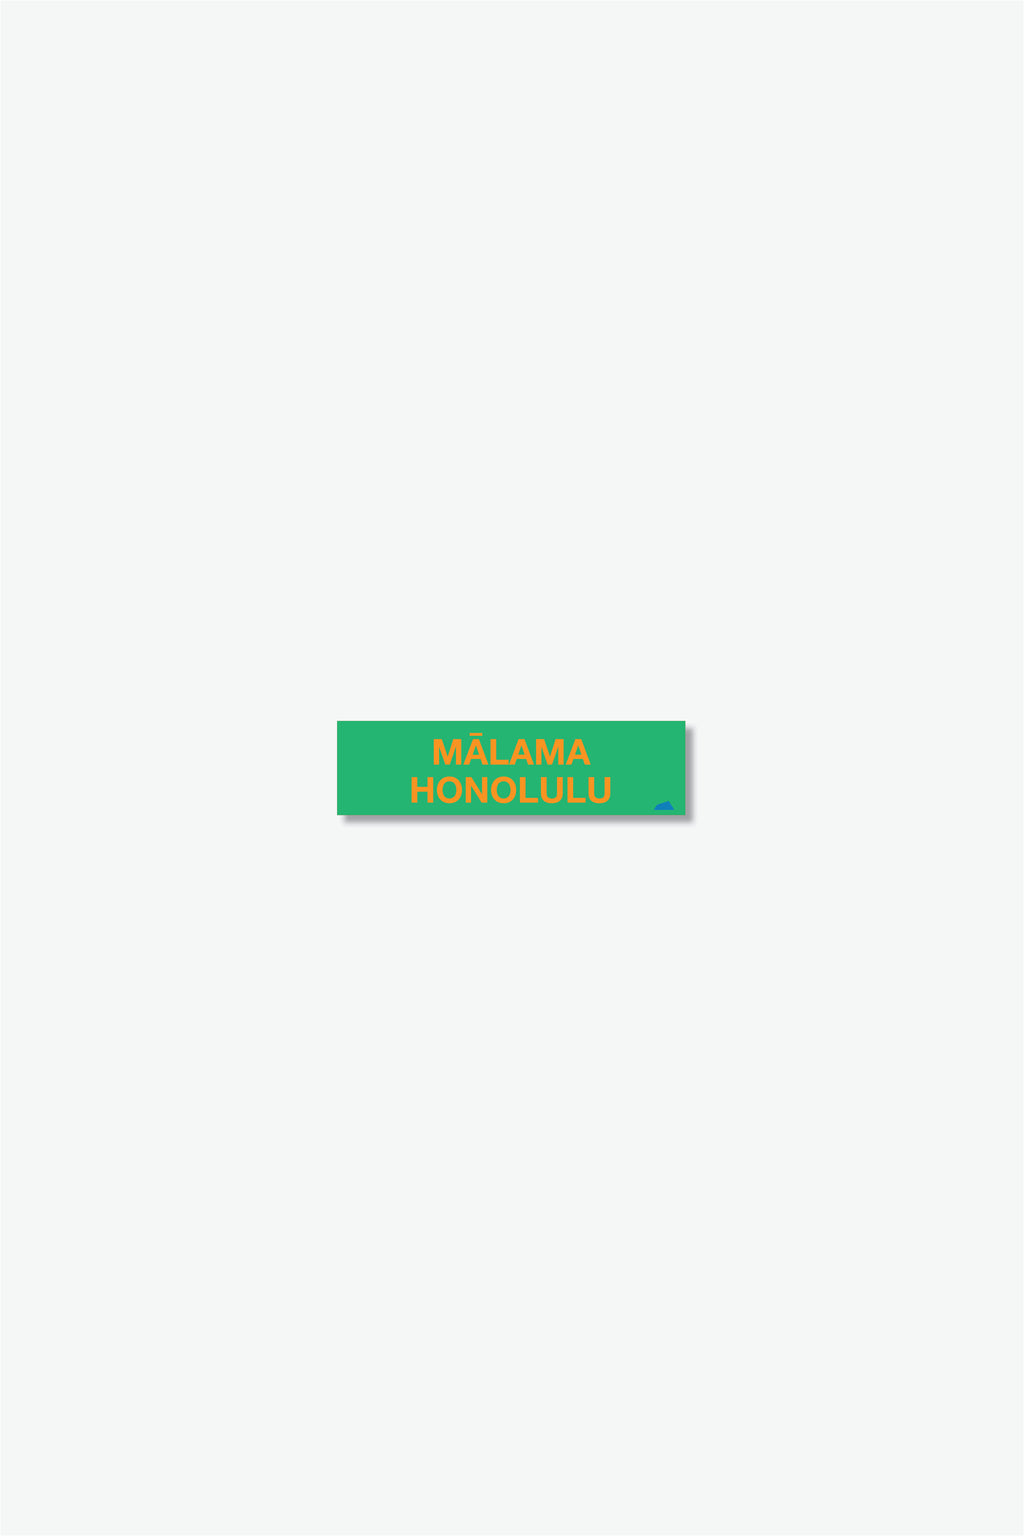 Mini Sticker - Mālama Honolulu - Green/Orange